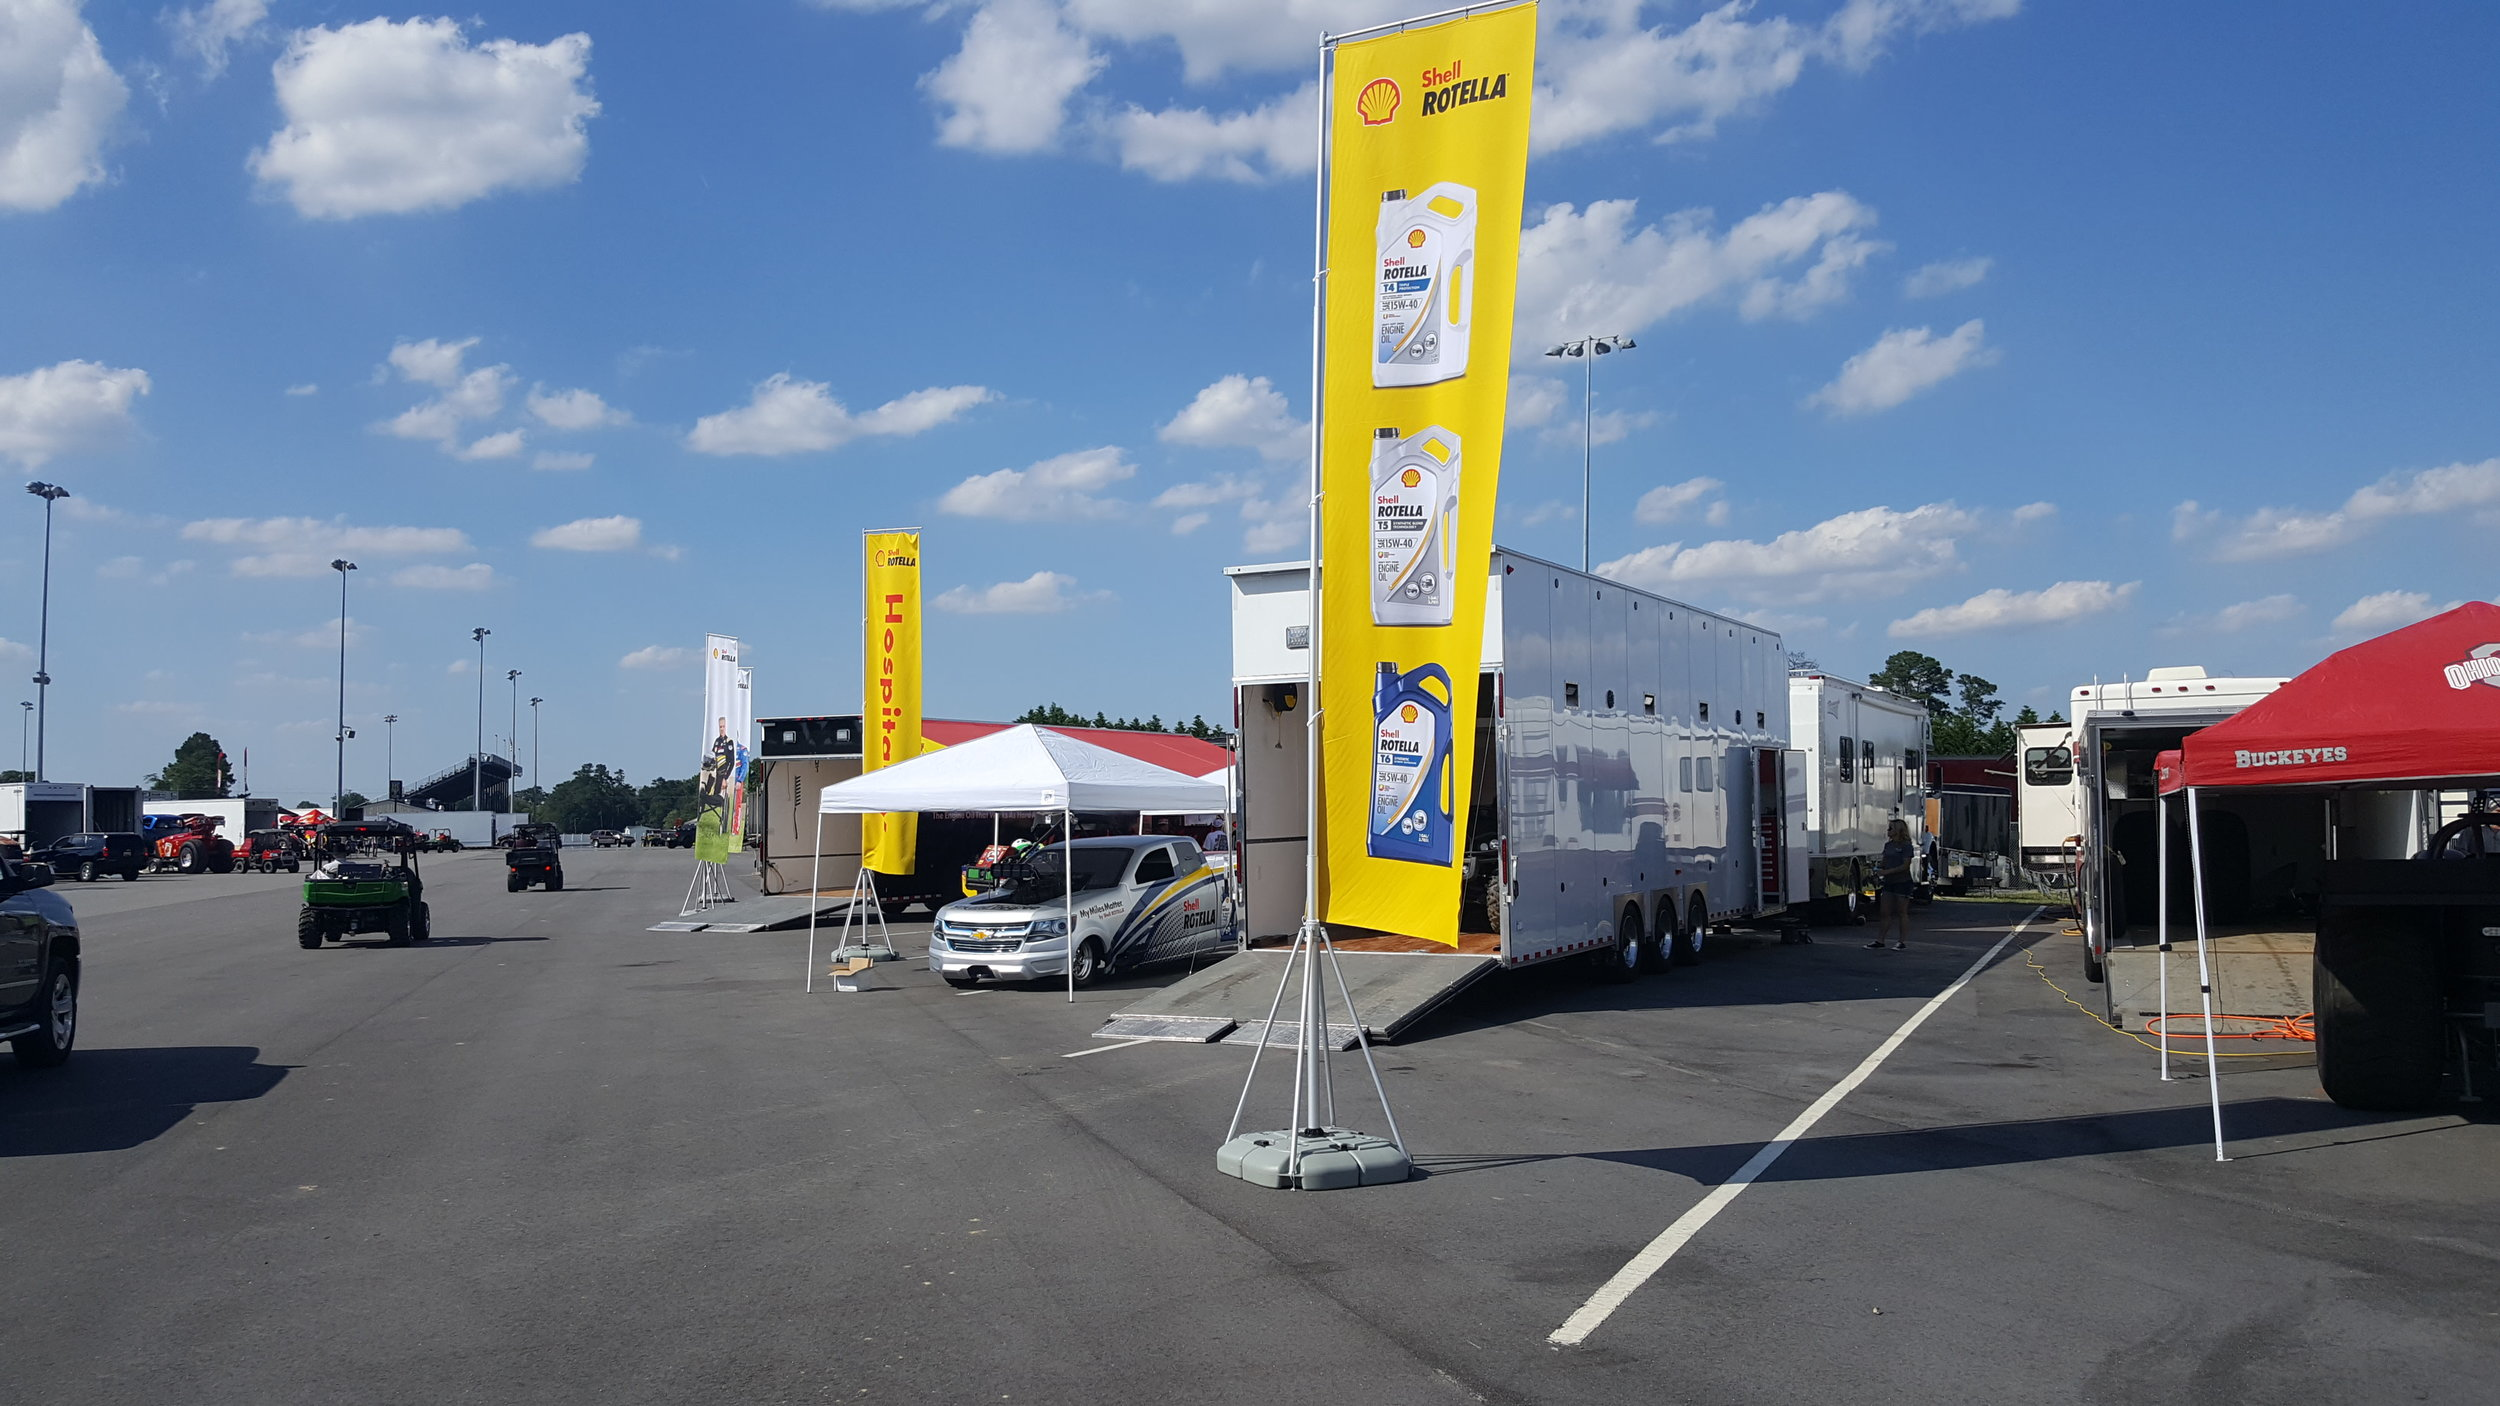 A Rotella fan-engagement zone is setup near the track throughout the weekend.